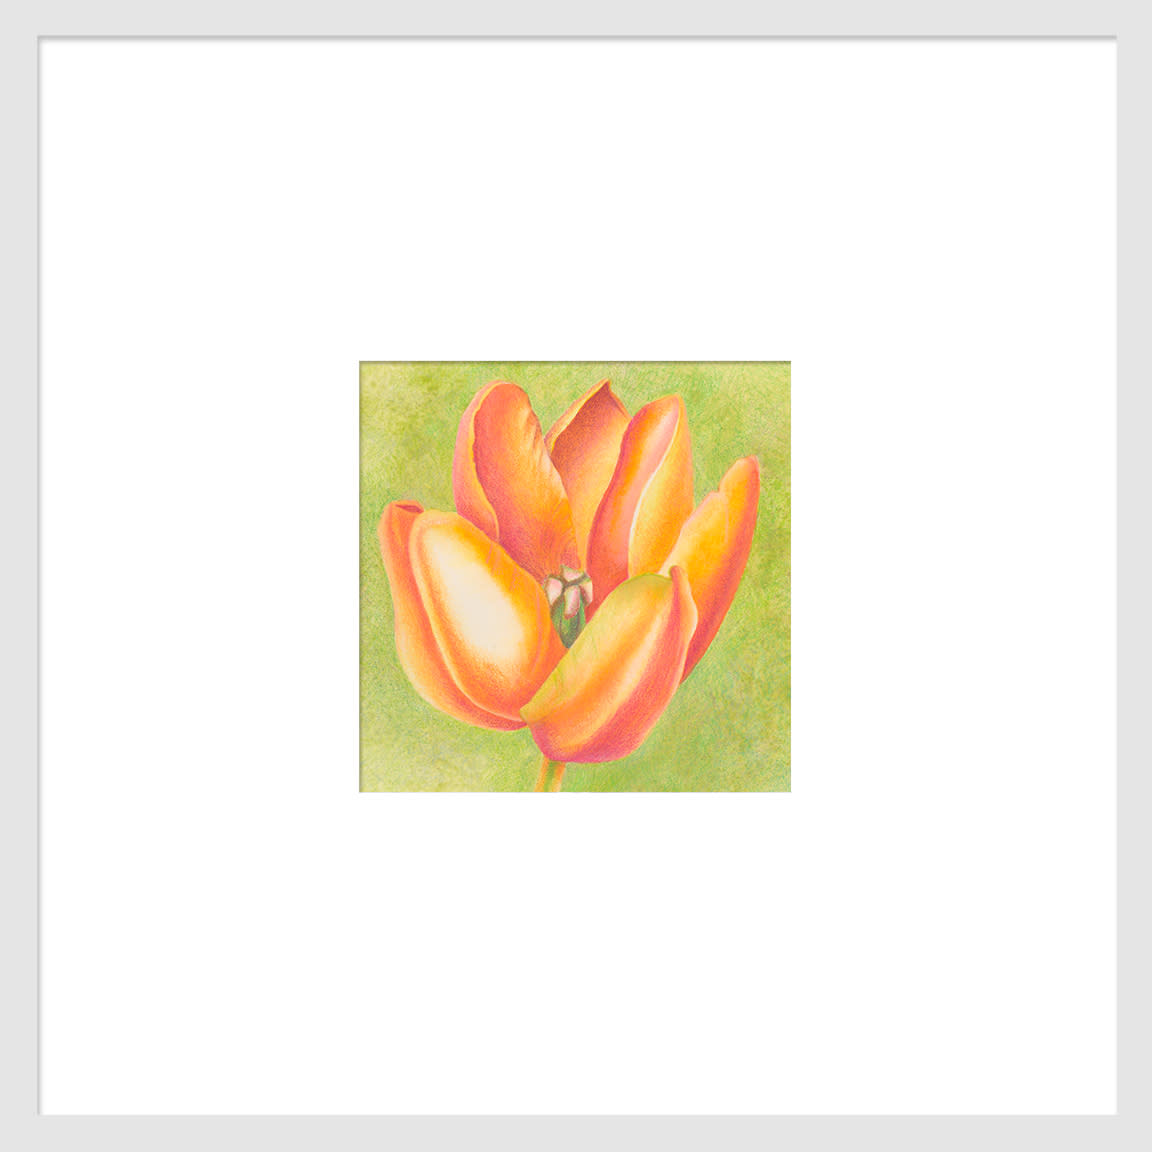 100703 orange tulip series  3 6x6 matted to 16x16x72 icjv13